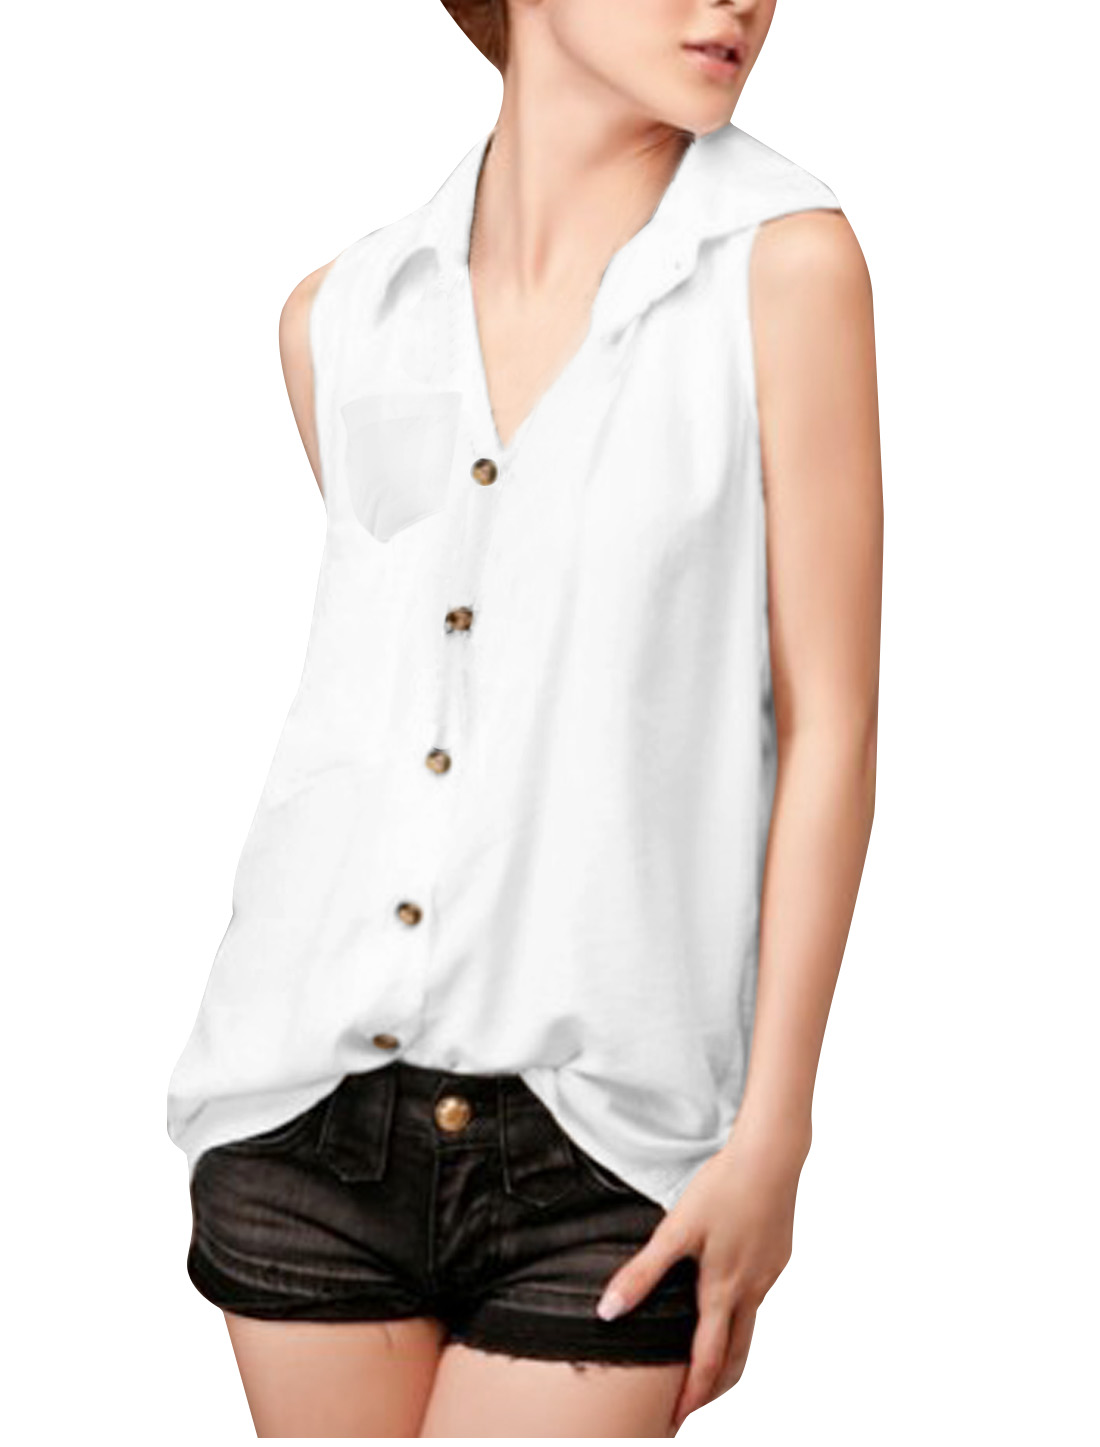 Ladies Chic Point Collar Sleeveless Pure White Button Down Shirt S